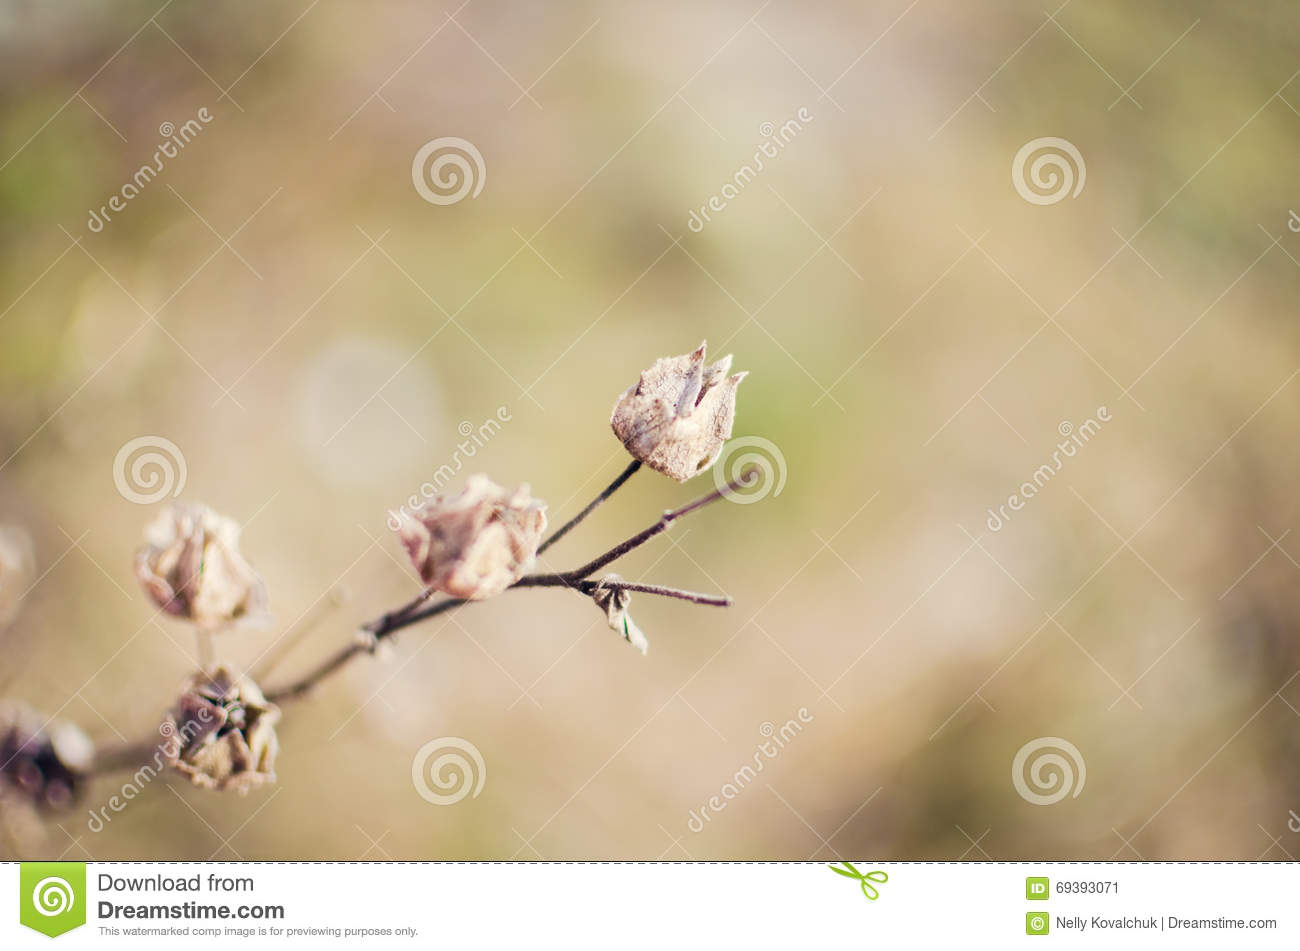 Dry Flower Background Stock Image Image Of Focus Bouquet 69393071